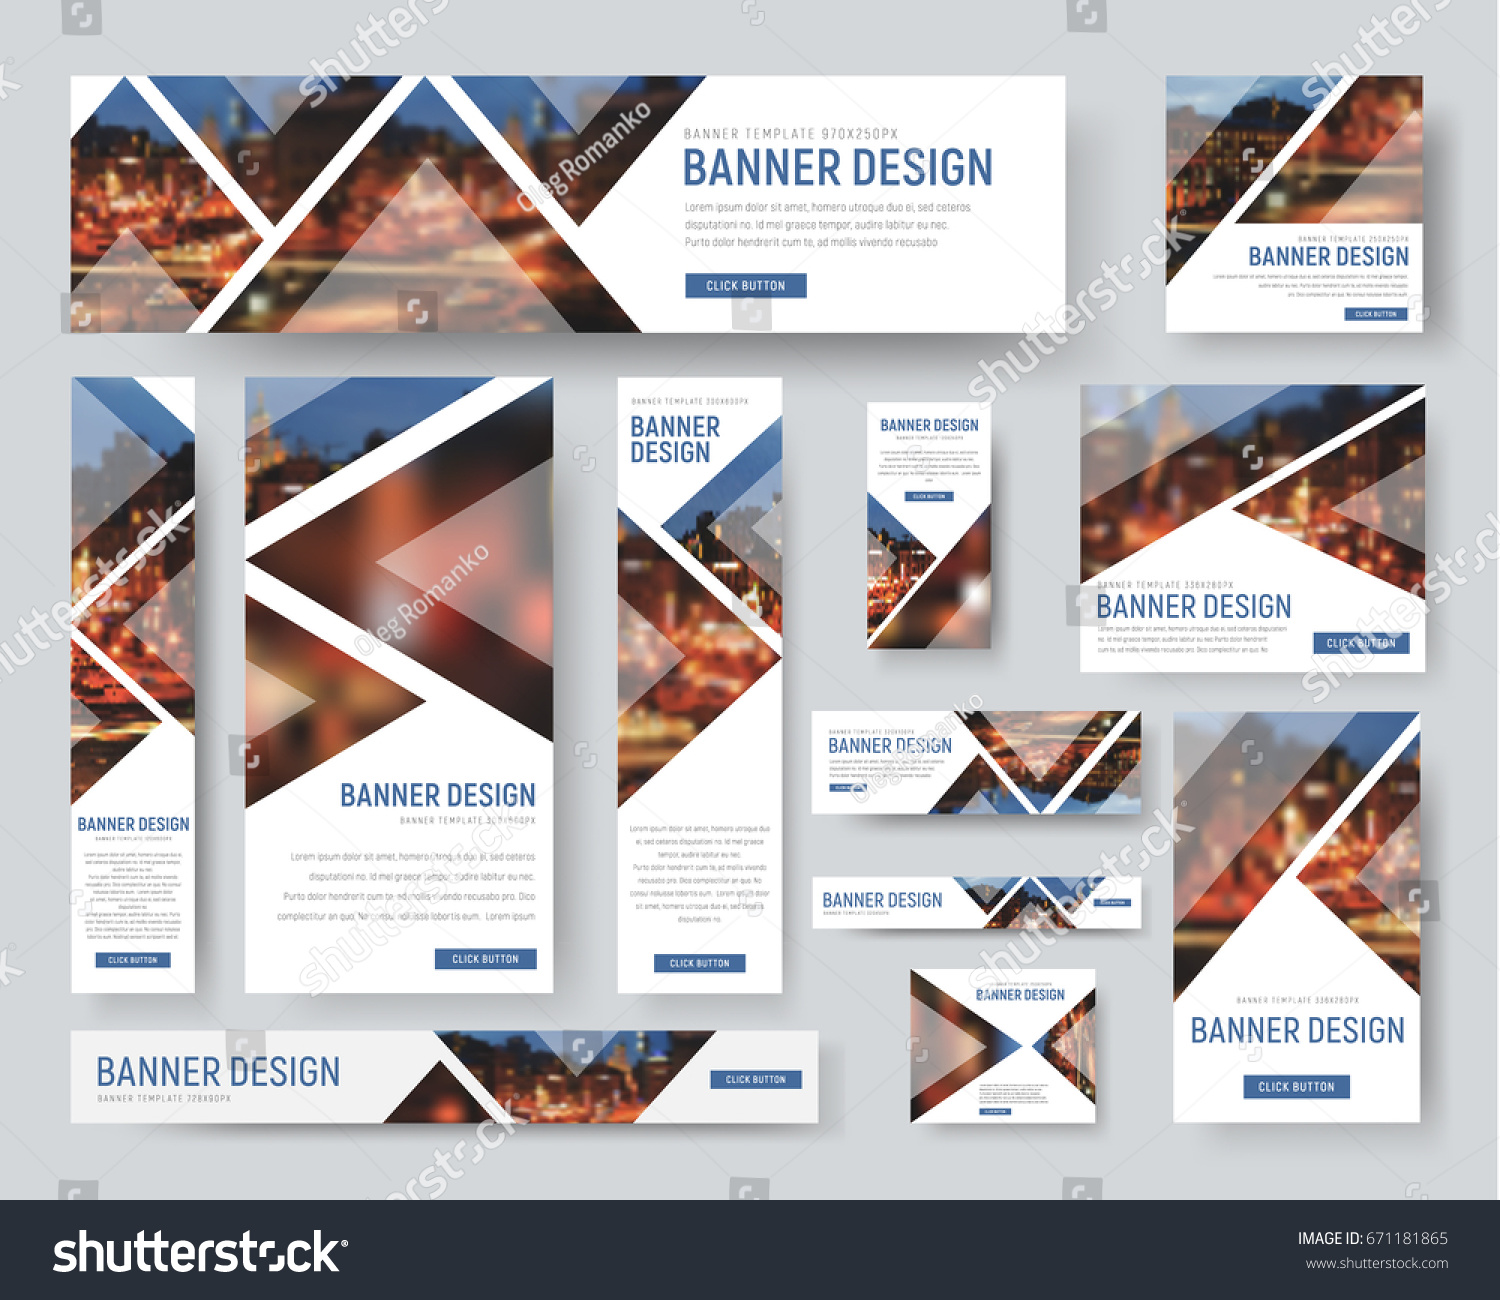 Template of white banners of standard size for the web. Design with triangular elements for a photo. Blurred image for example. Vector illustration. Set #671181865